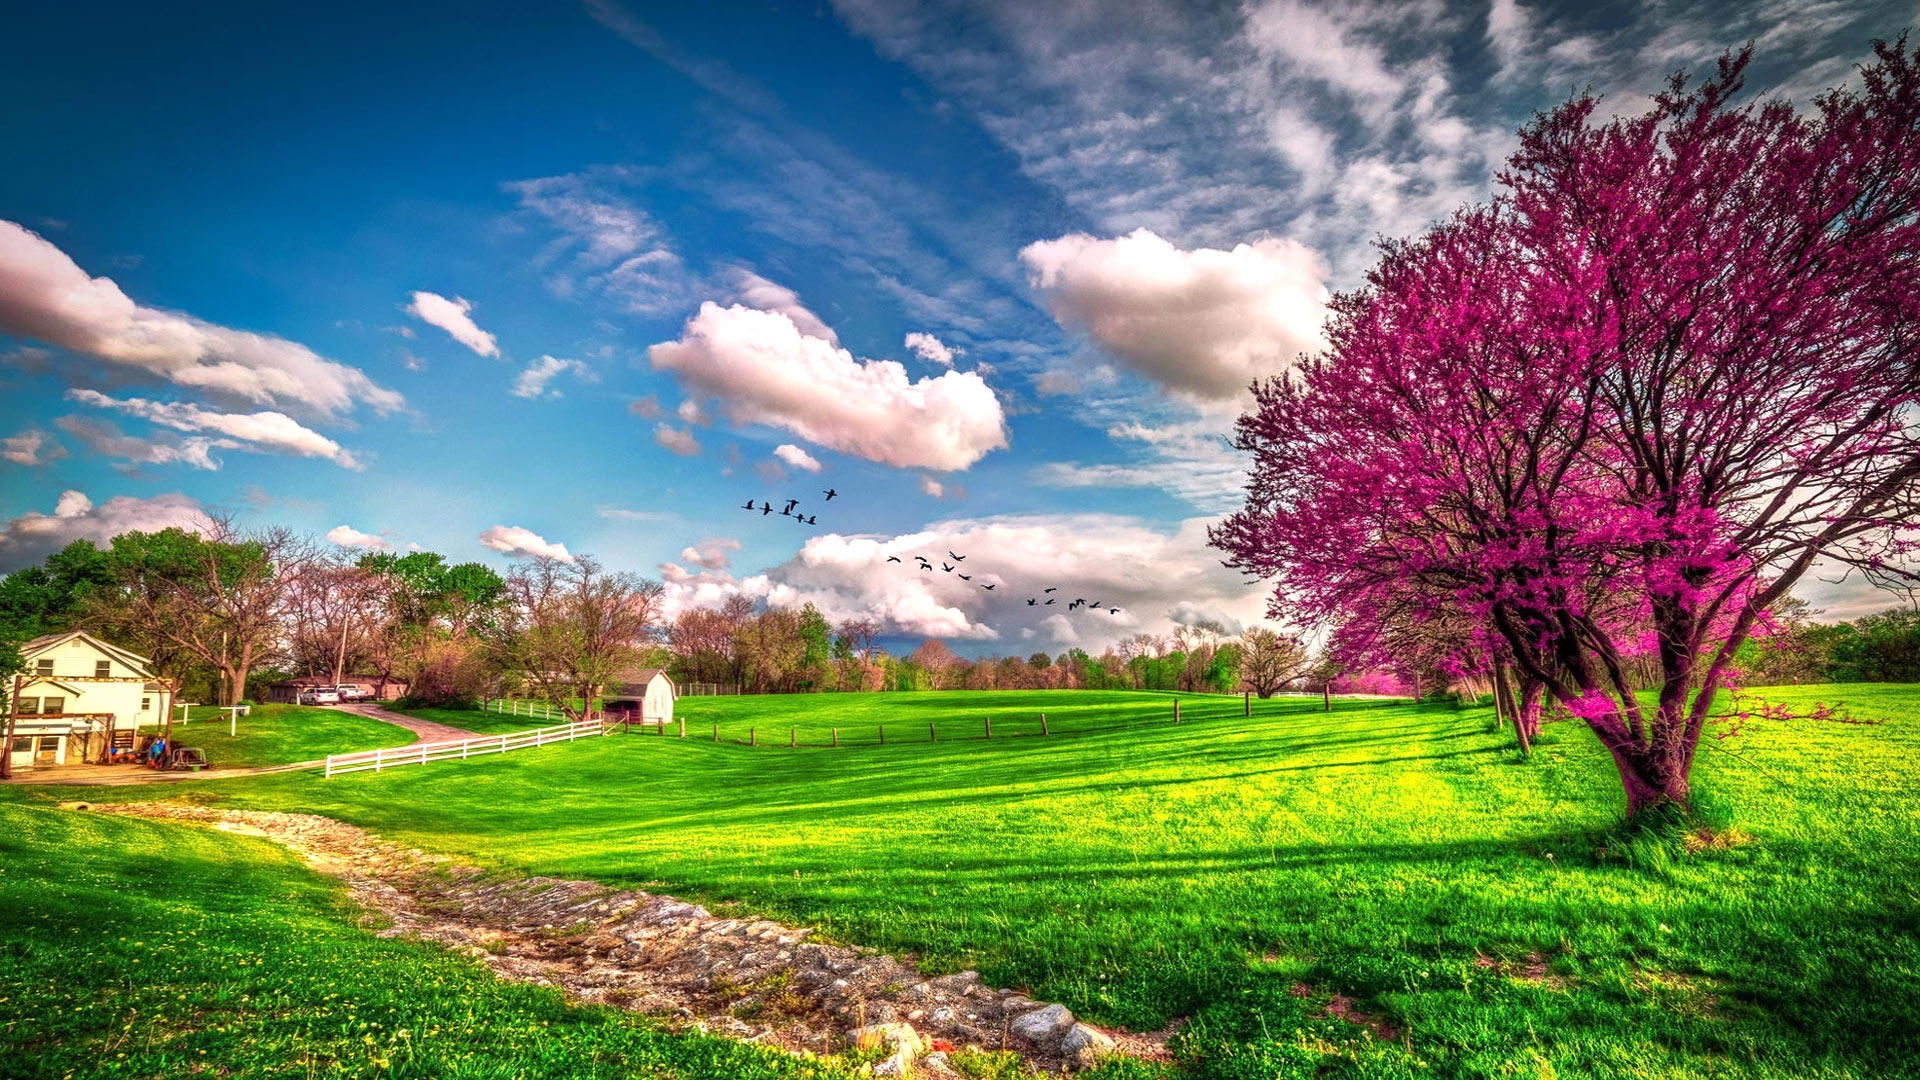 Beautiful Nature Wallpaper Hd 64 Images: Beautiful Spring Wallpapers, Pictures, Images